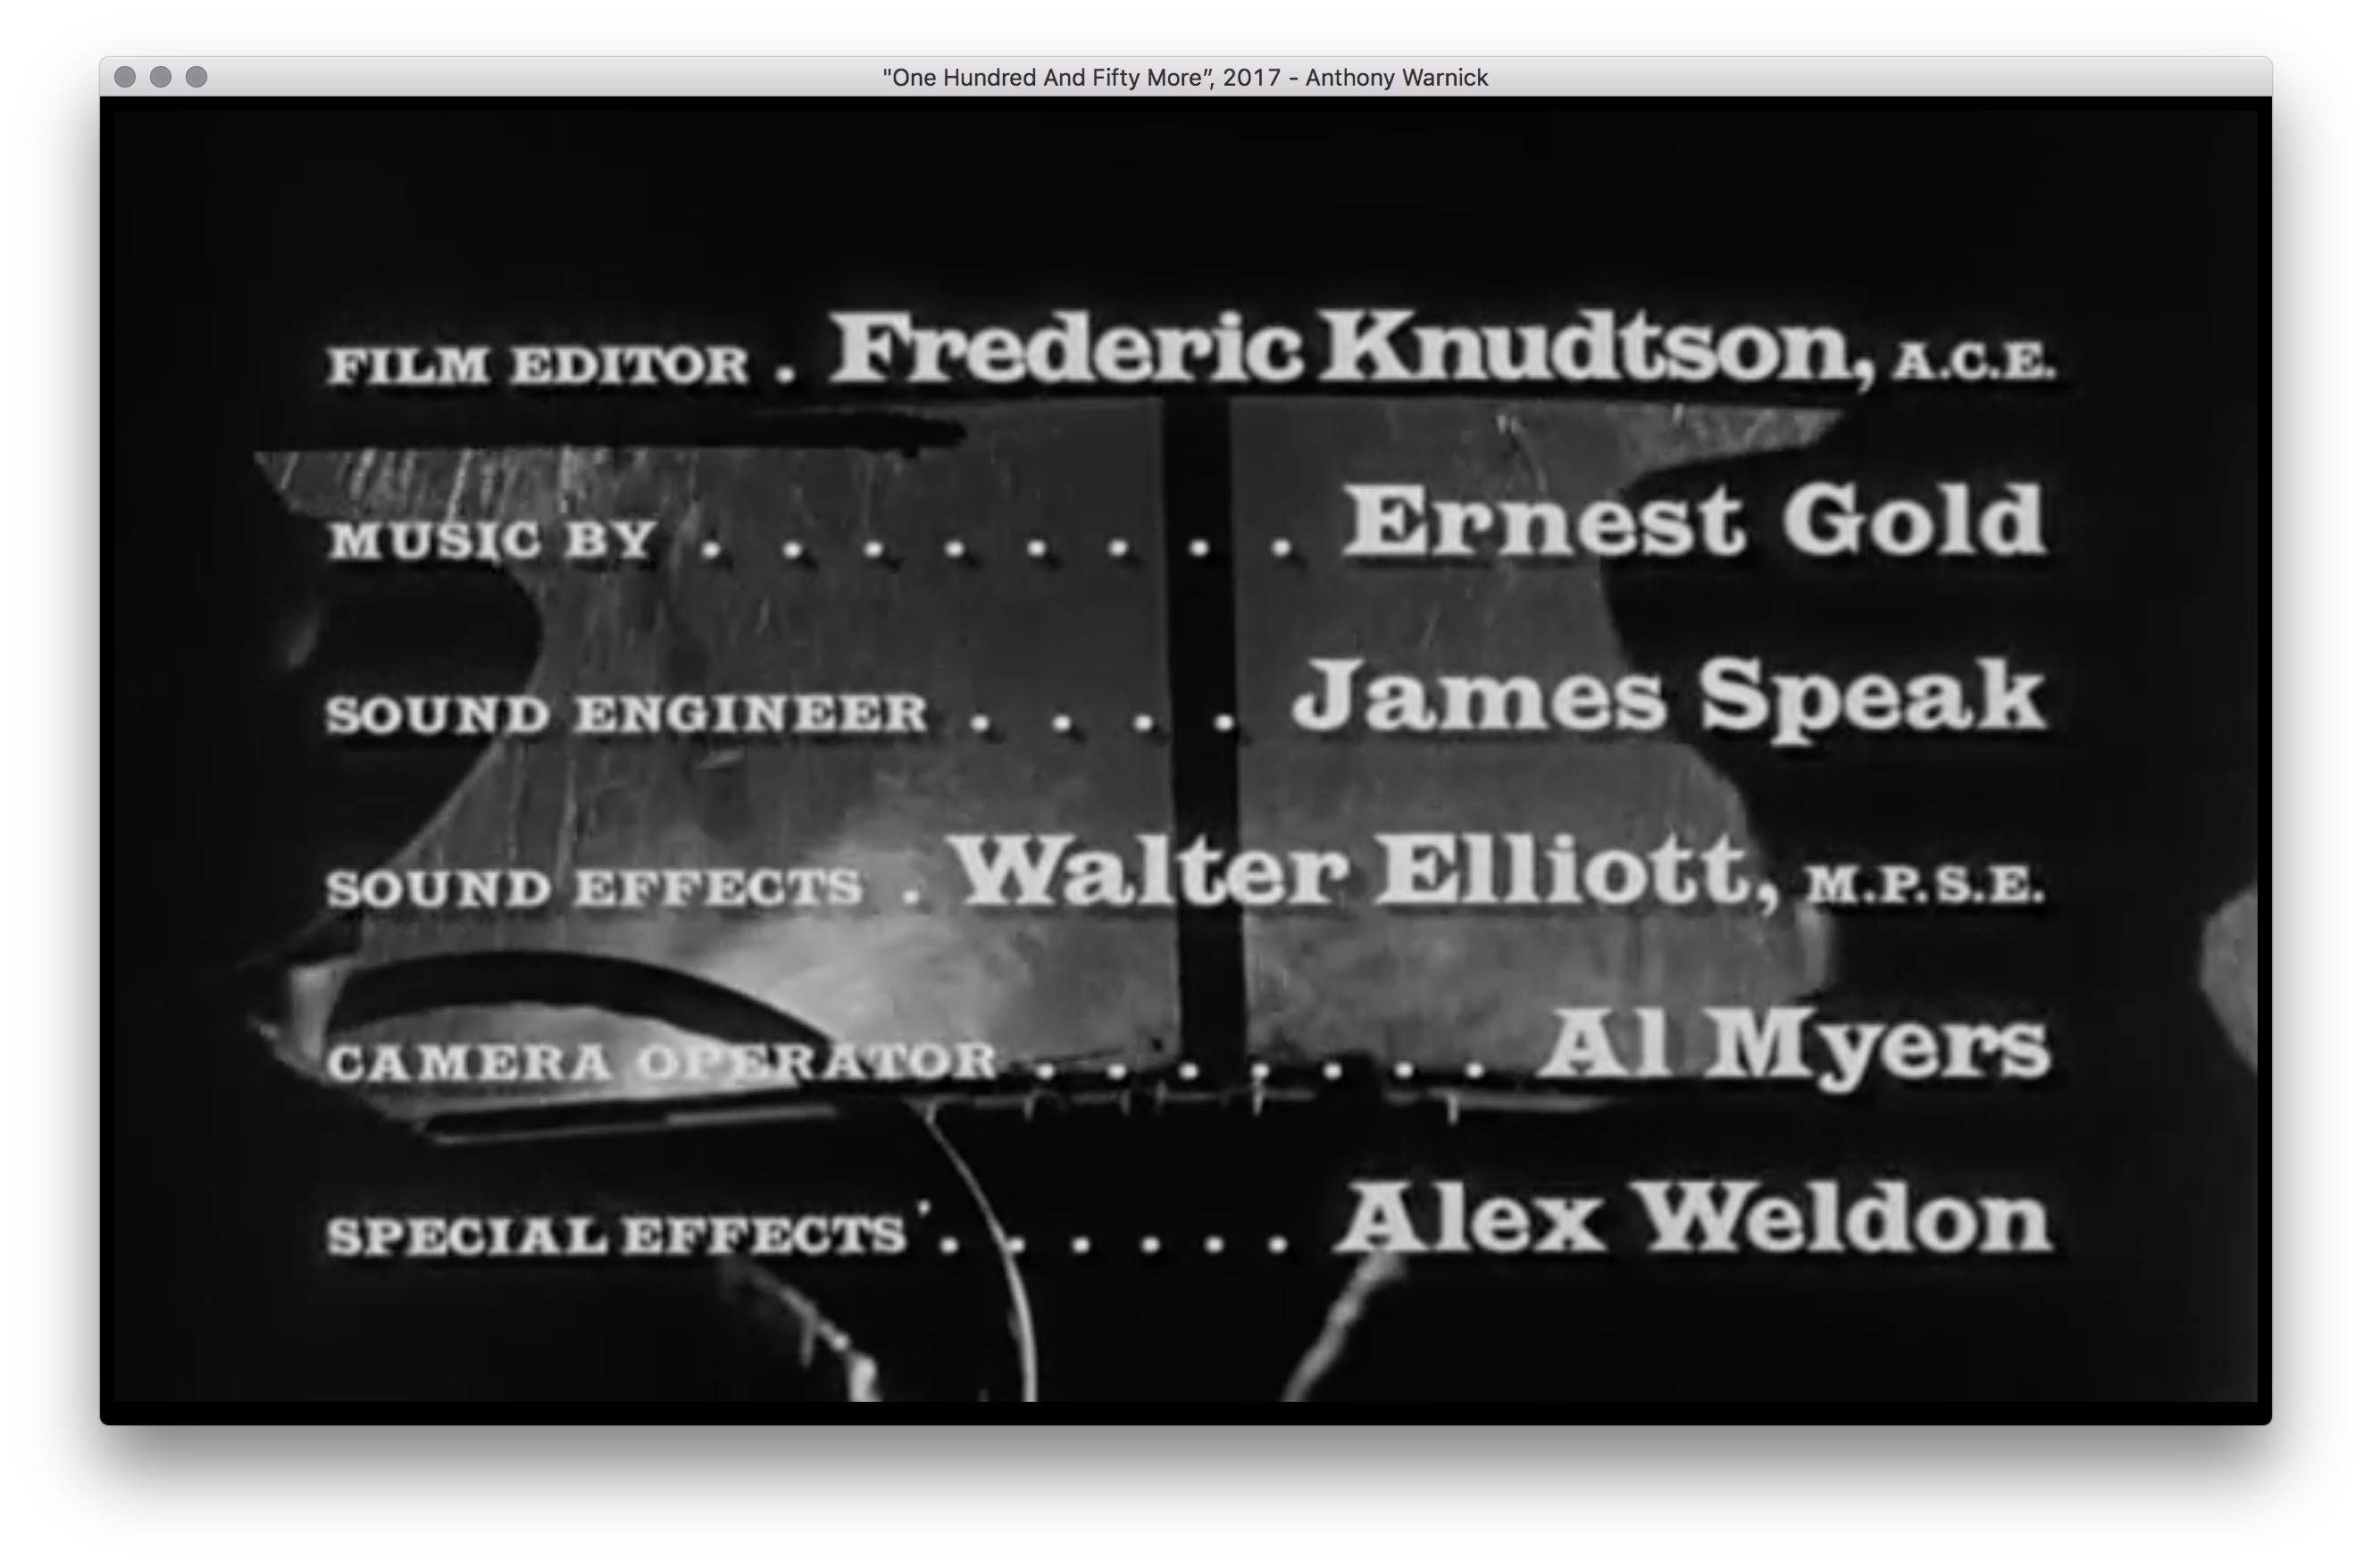 Anthony Warnick, One Hundred And Fifty More 2017 Digital Projection (Black and White, Silent), Custom Software The film, The Defiant Ones (1968) slowed down so that it will take 150 years to play through. This is packaged as a custom application that plays only where we are in the film.